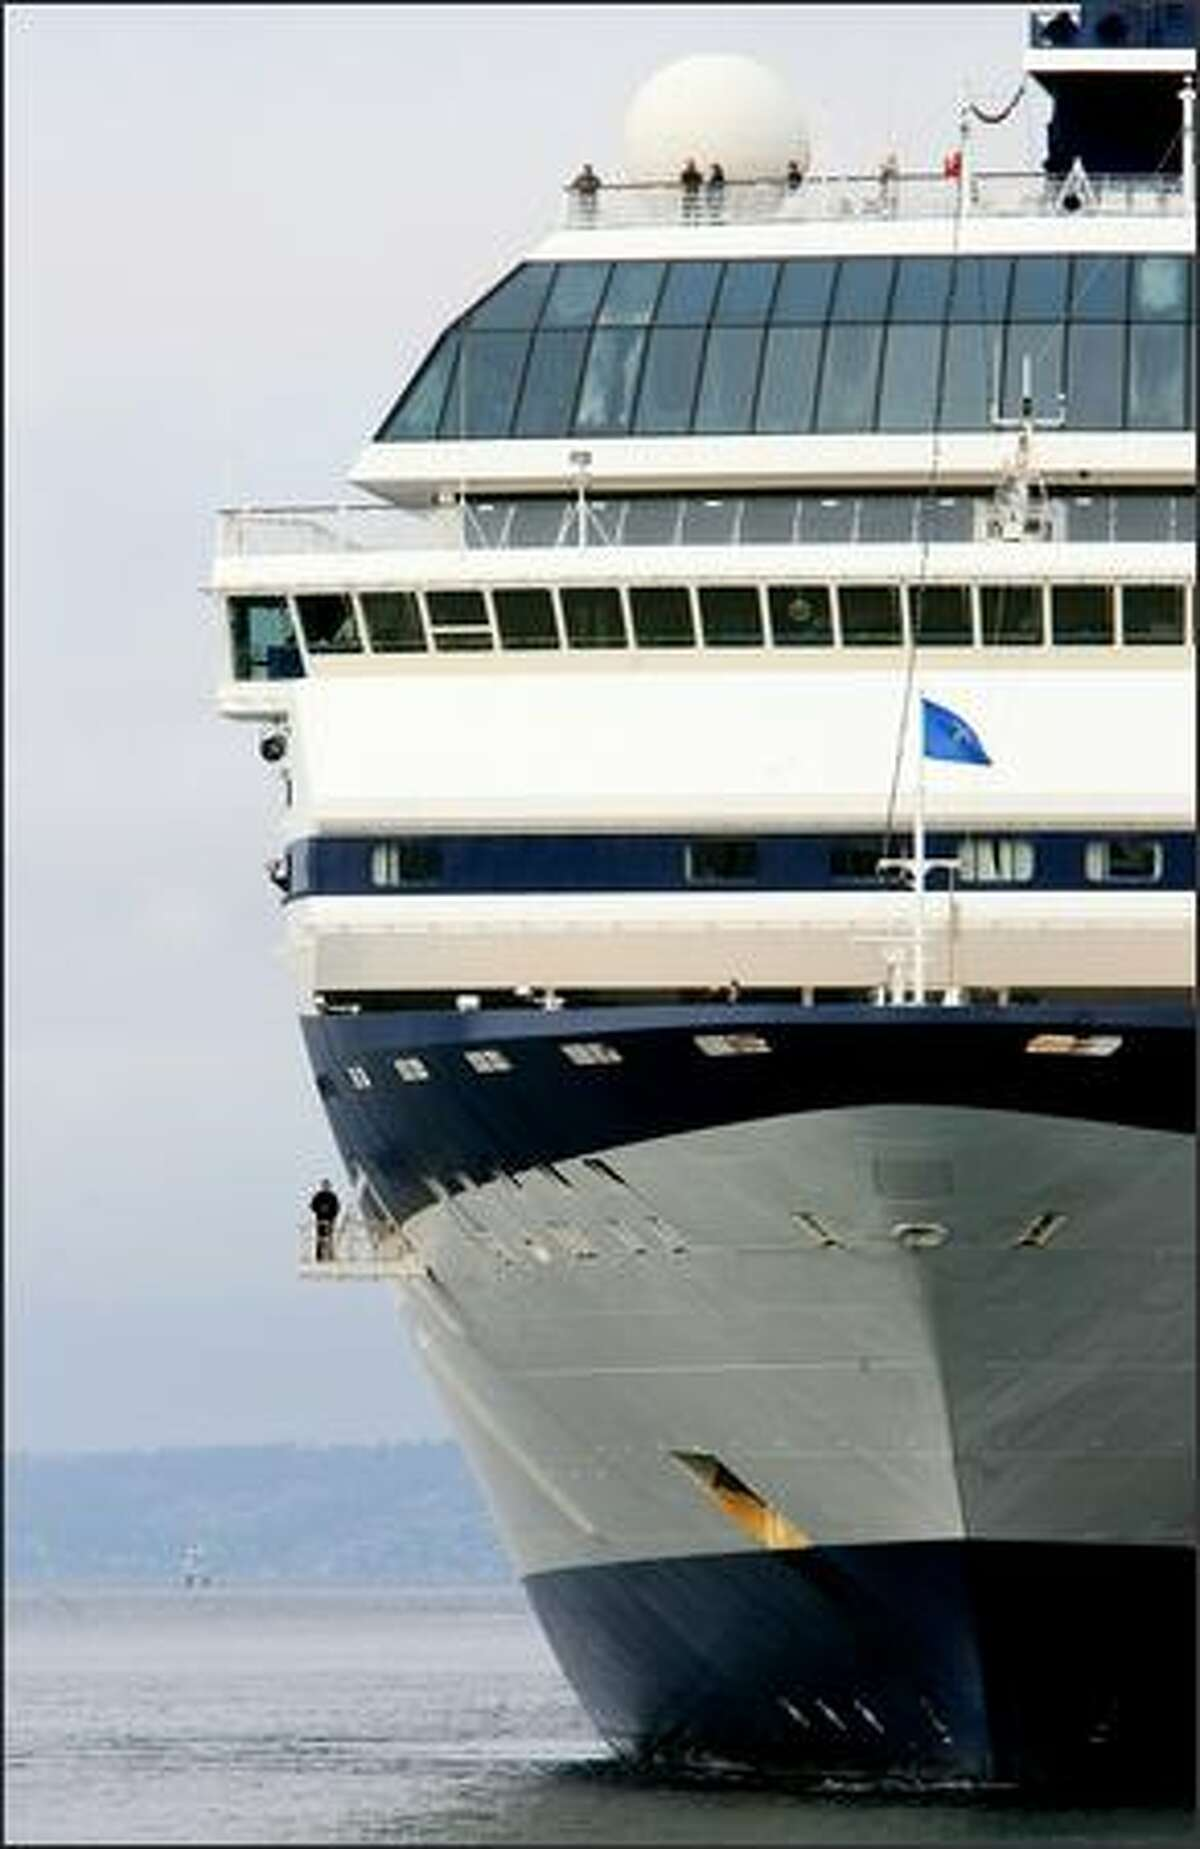 The 866-foot,, 77,713-ton Mercury, a Celebrity Cruises-class ship, arrives at Pier 66 in Seattle on Monday, the first day cruise ships arrived for the 2007 season.